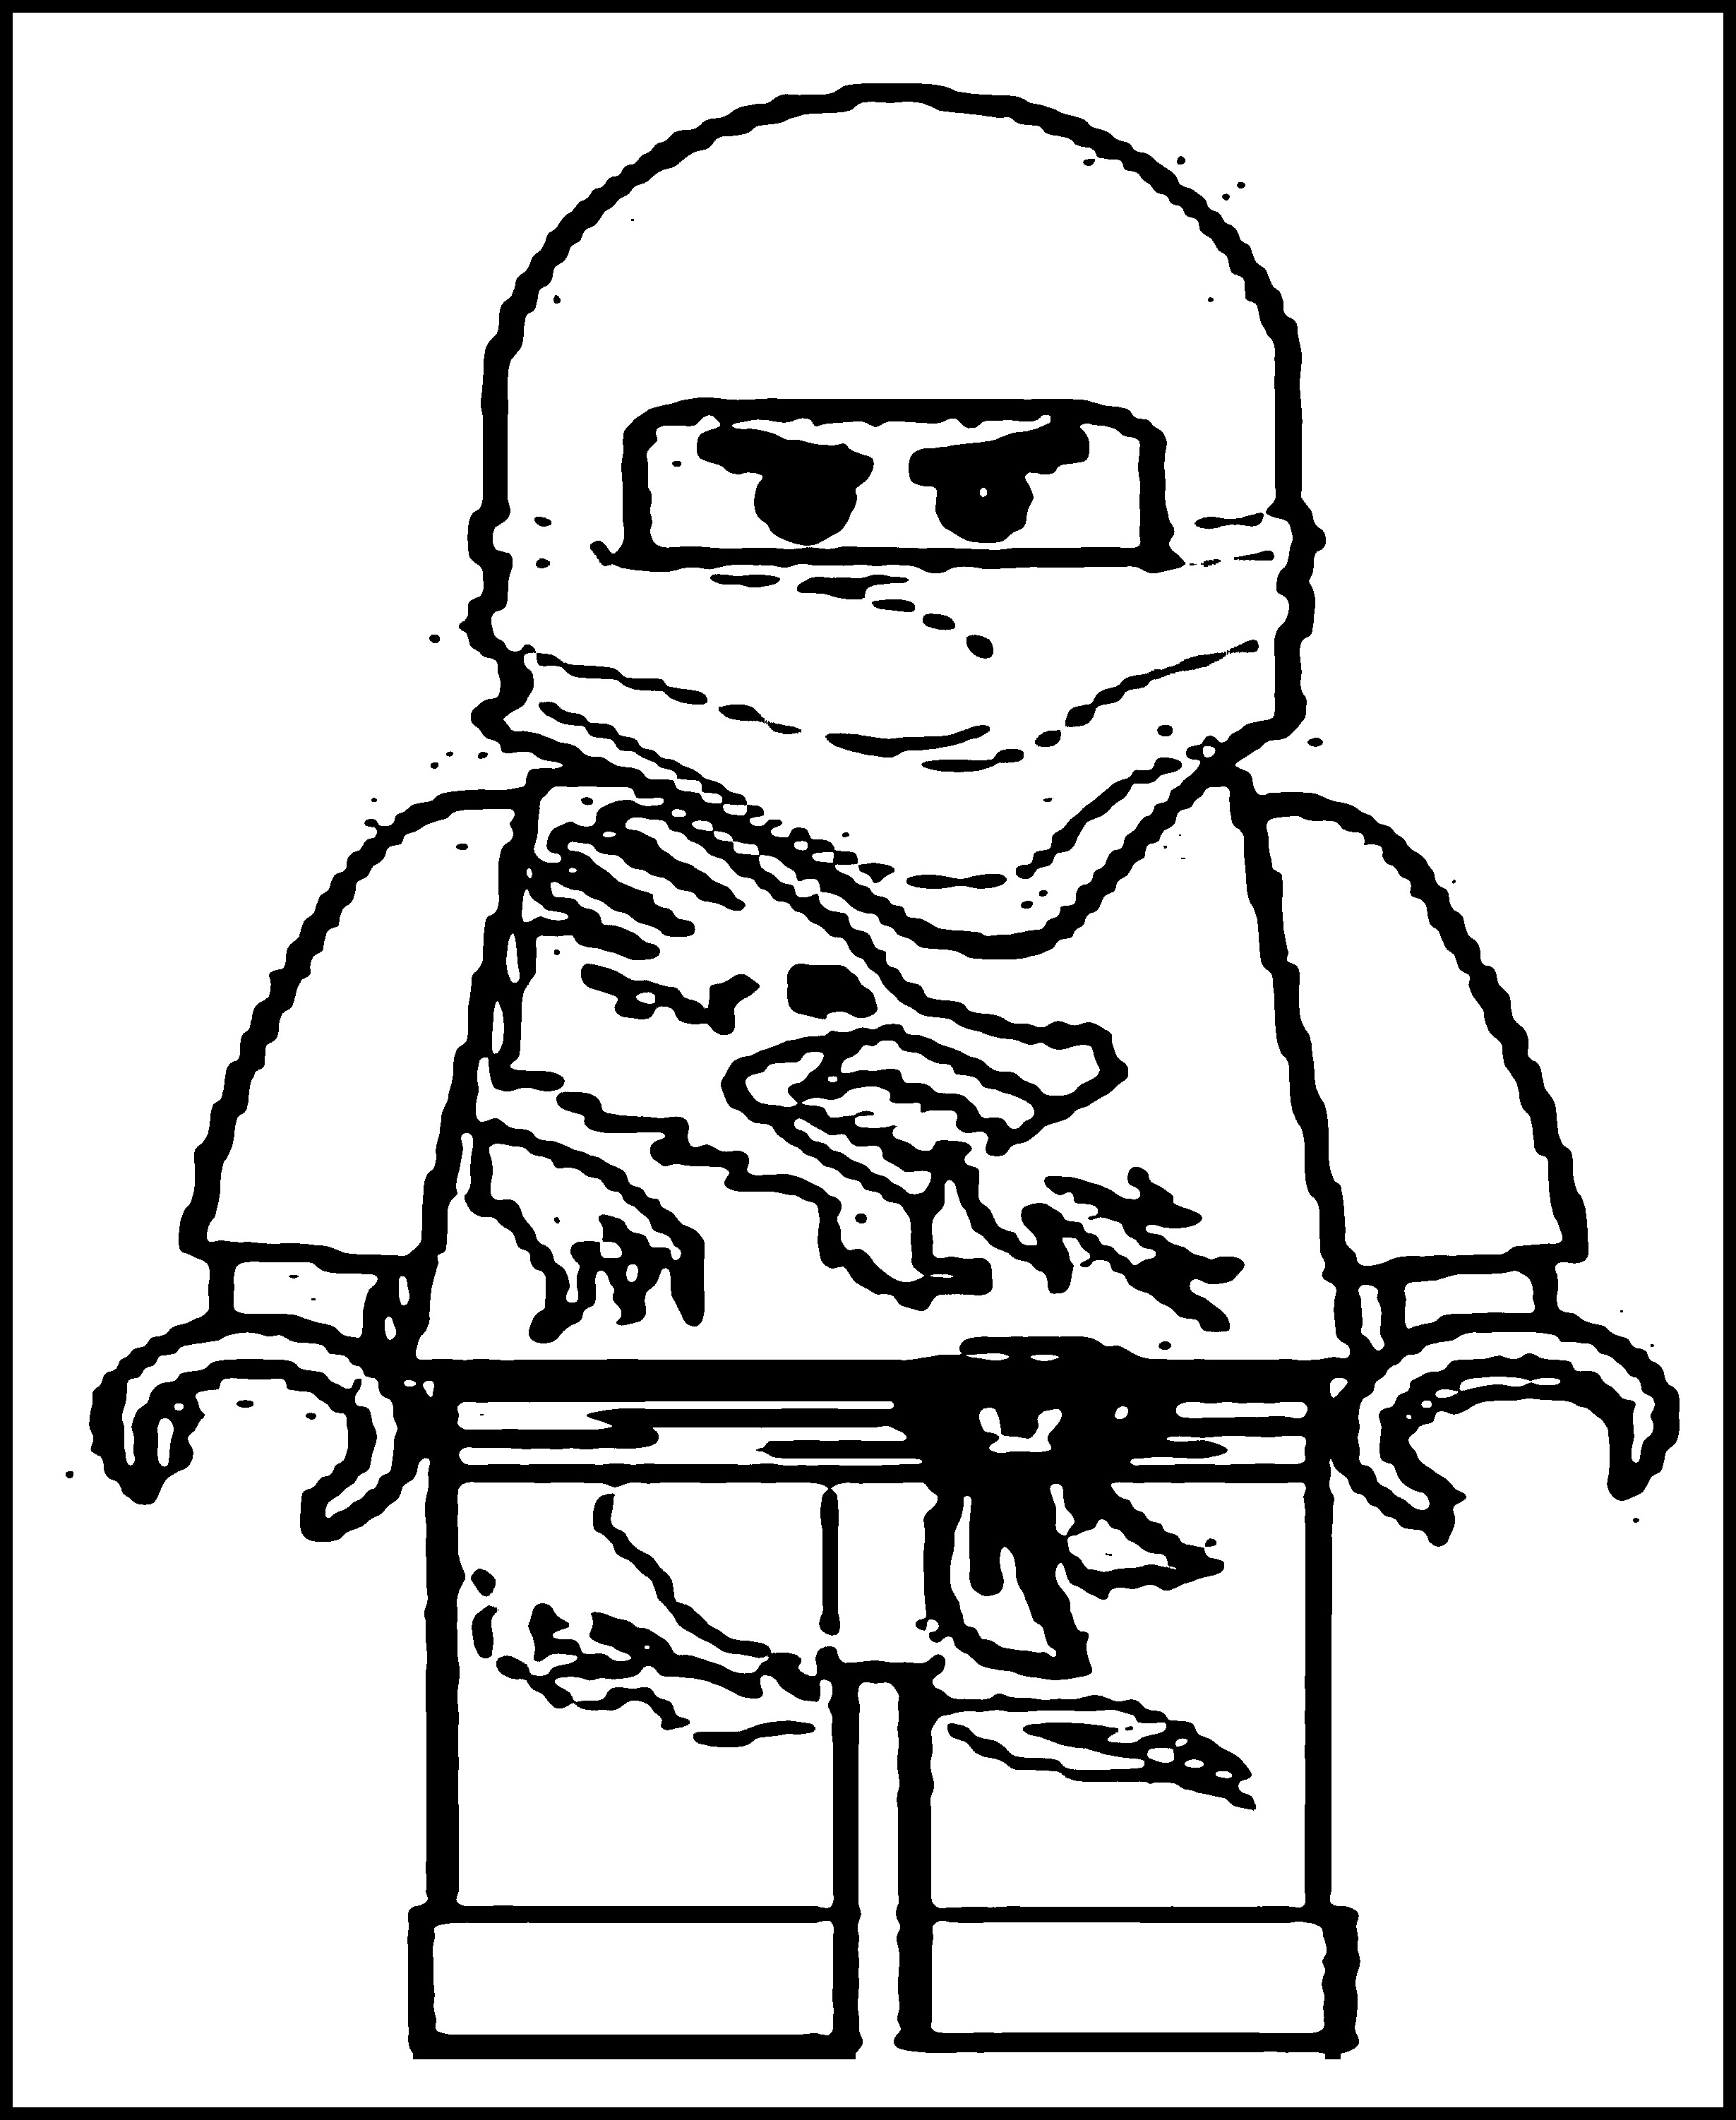 free ninja star coloring pages - photo#27